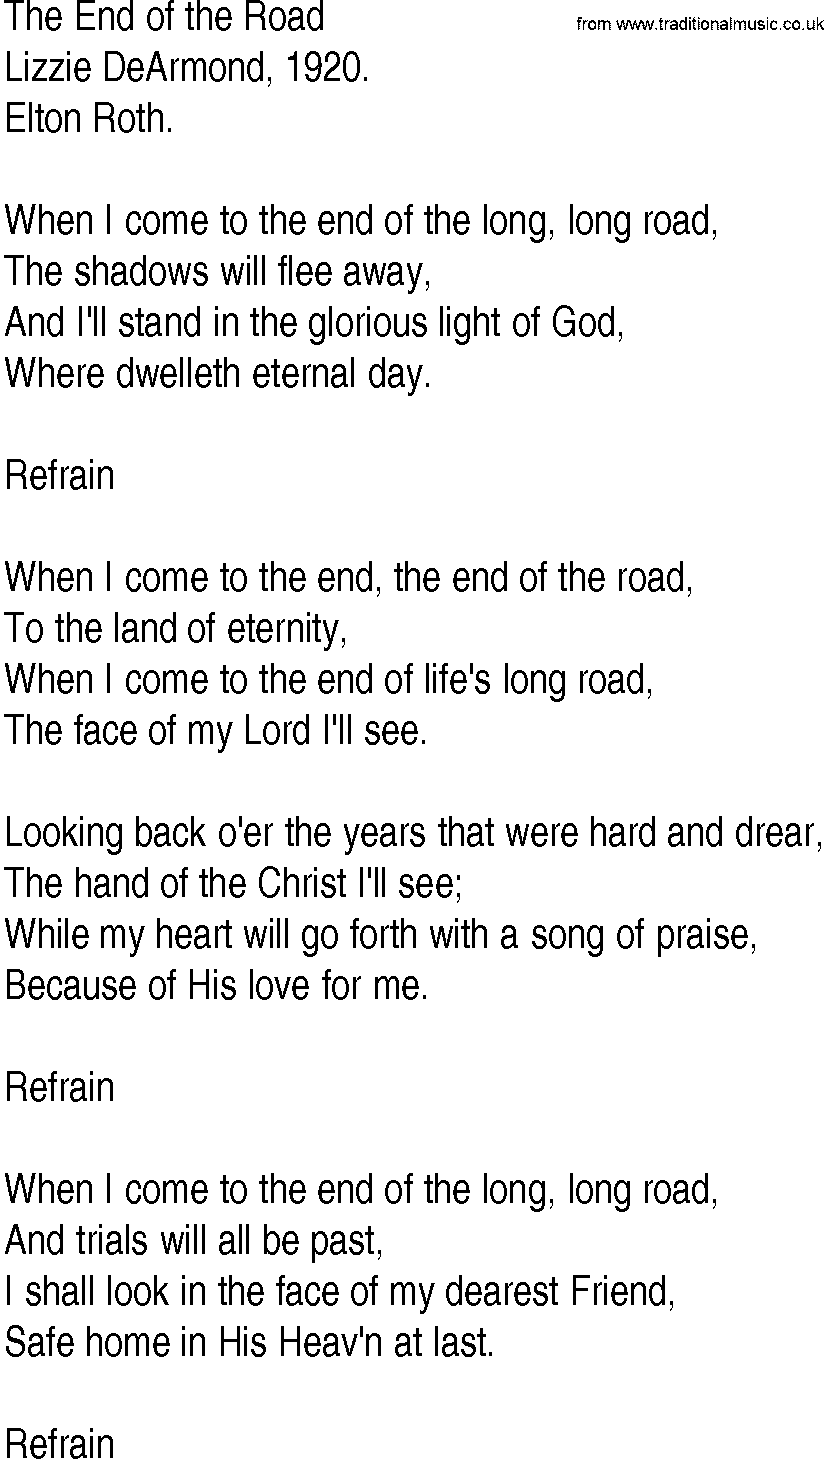 two for the road song lyrics